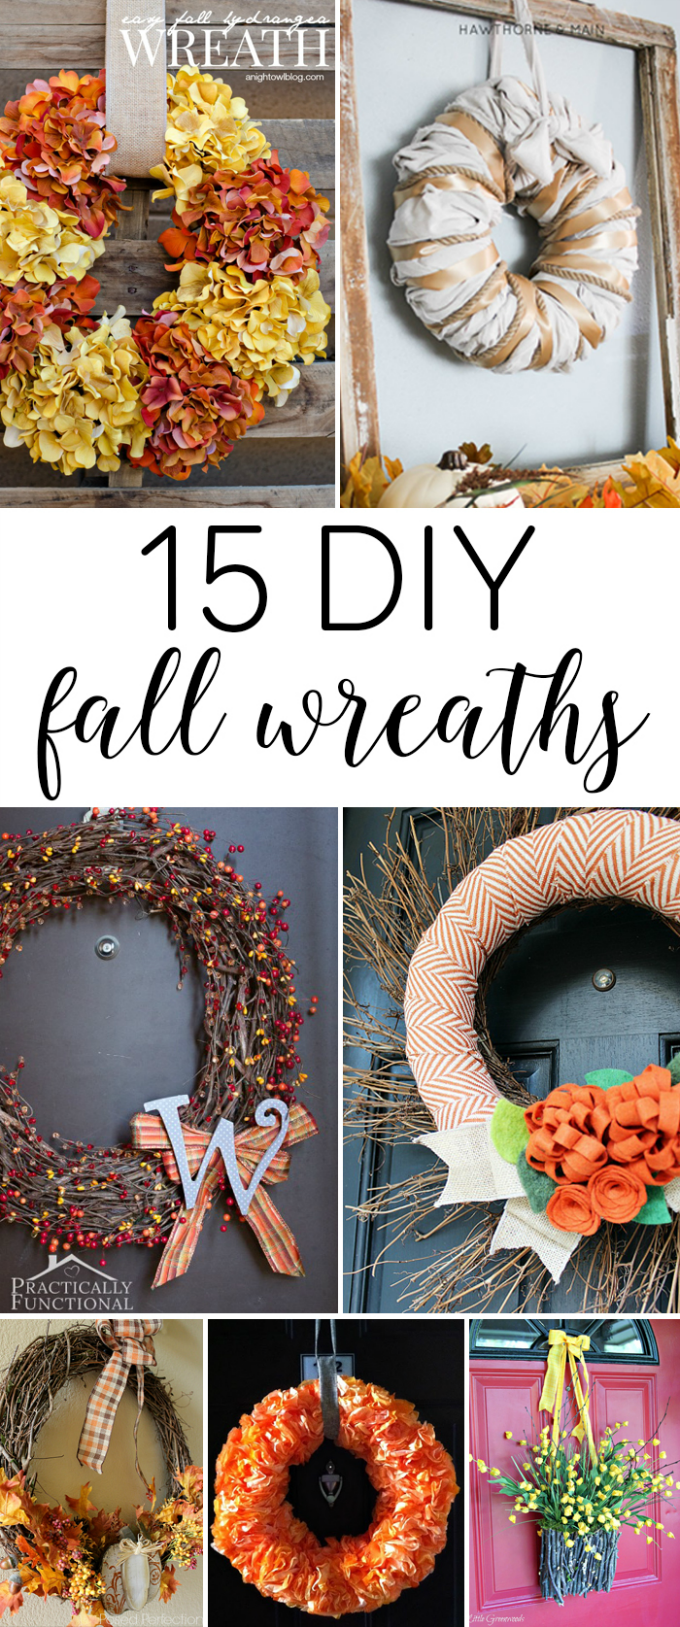 15 DIY Fall Wreaths. A round-up of 15 DIY fall wreath ideas that will inspire you to welcome the fall season.